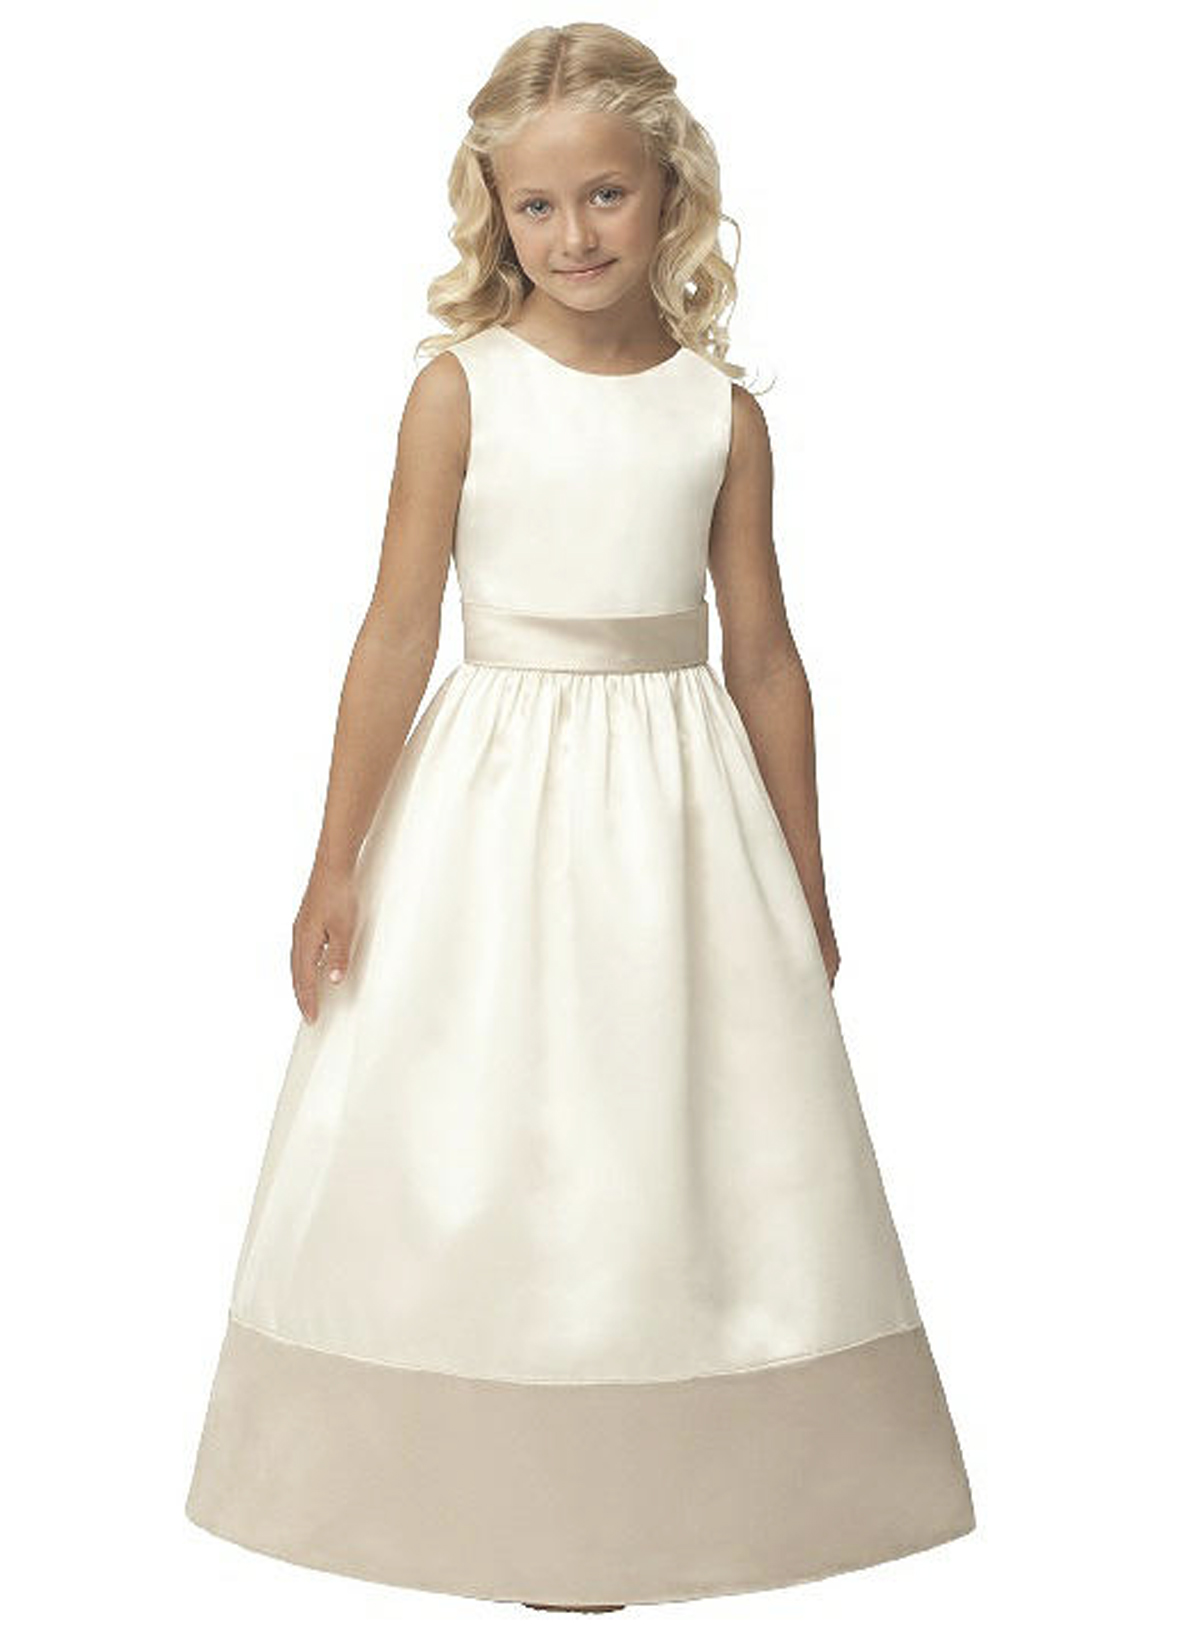 311720538b67c Flower Girl Dresses Melbourne FL | (321) 373-1002 | Nicole Maree Bridal